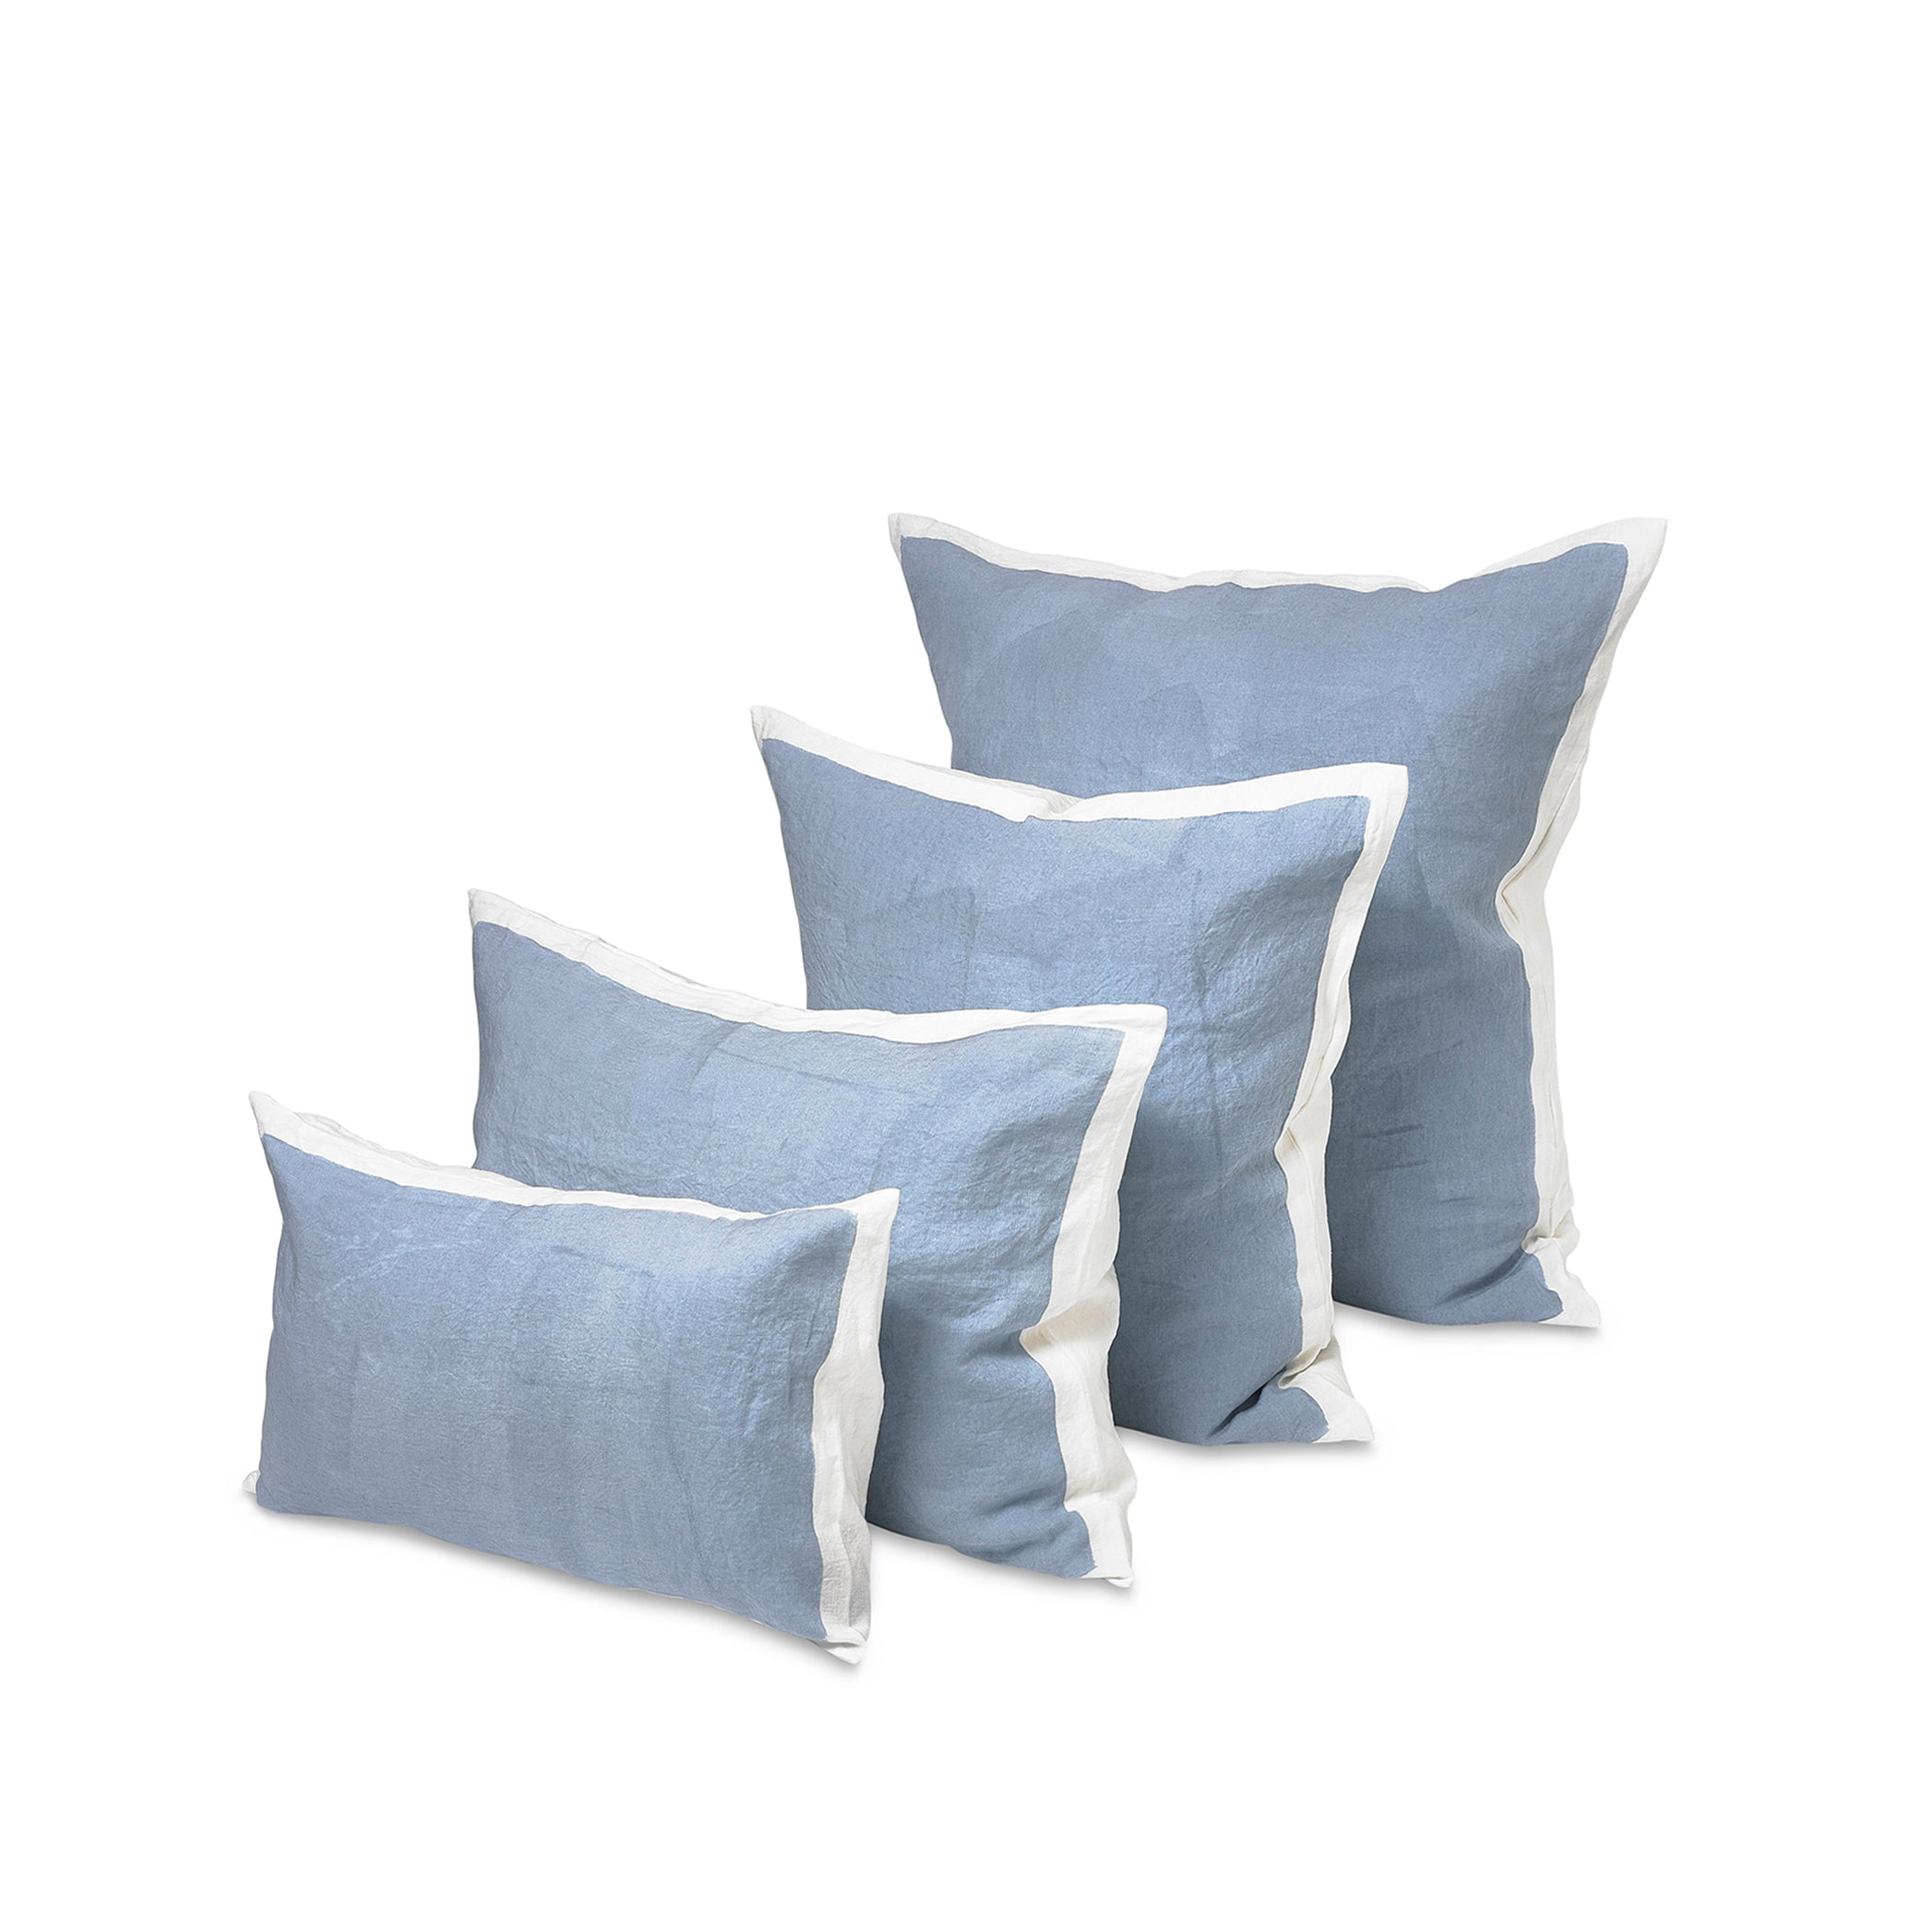 Hand Painted Linen Cushion Cover in Pale Blue, 50cm x 50cm